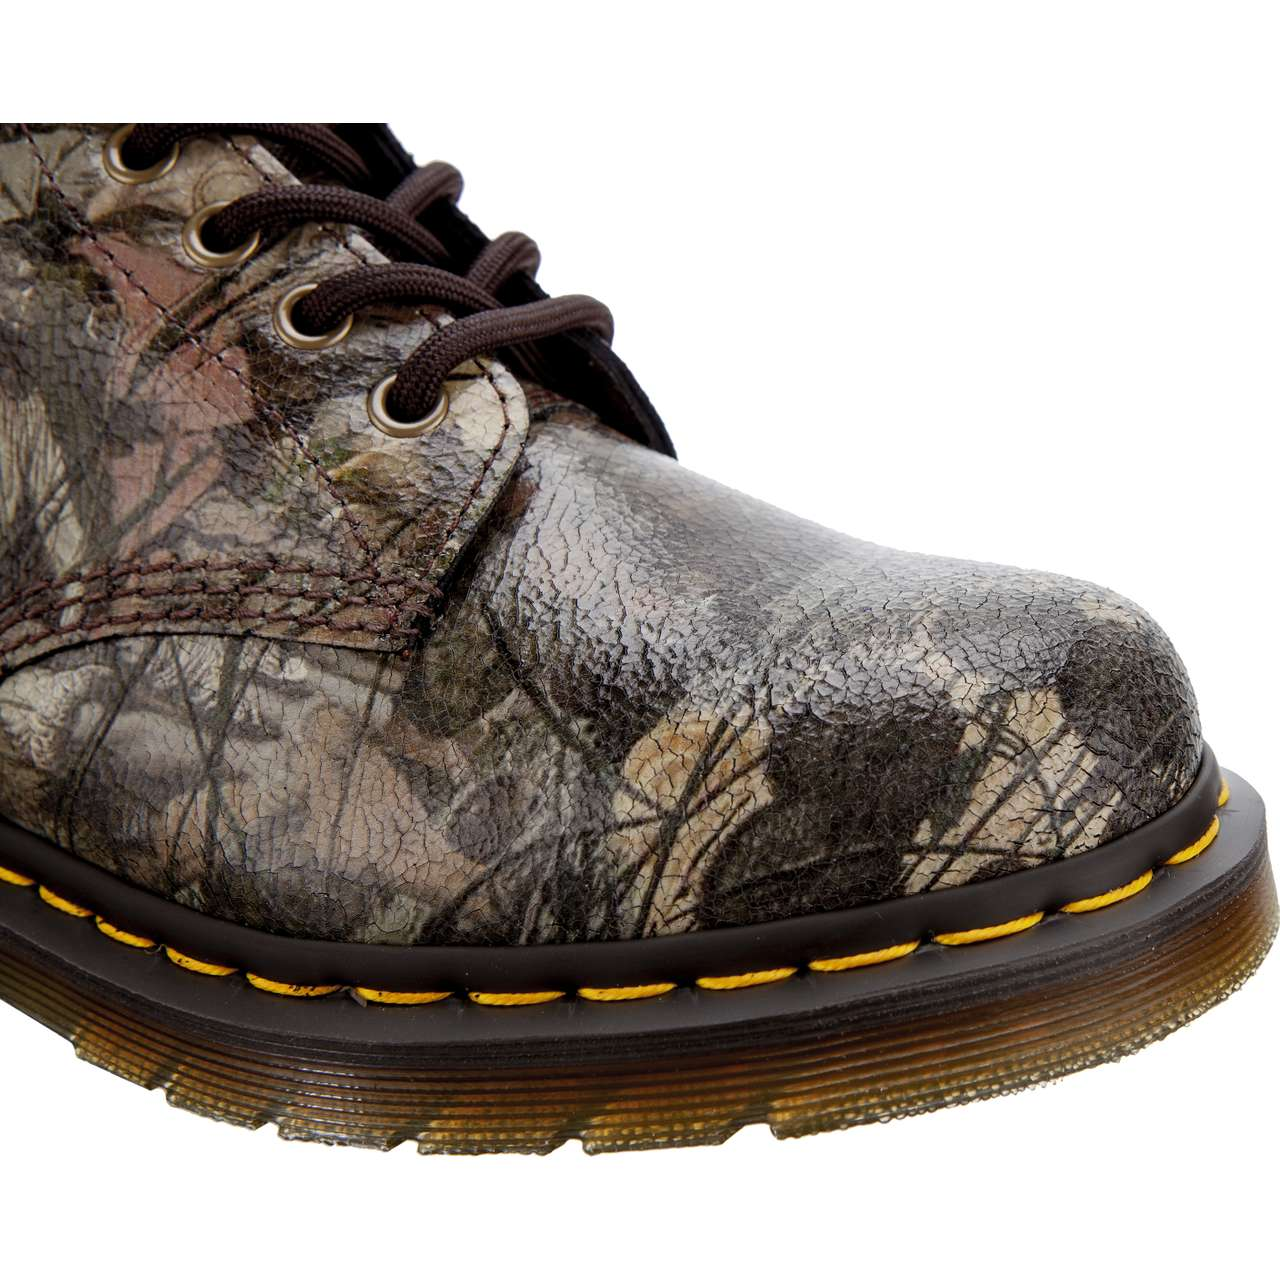 Buty Dr. Martens  <br/><small>DADD 1460 PASCAL MULTI DADD TATE CRISTAL SUEDE </small>  DM24190102